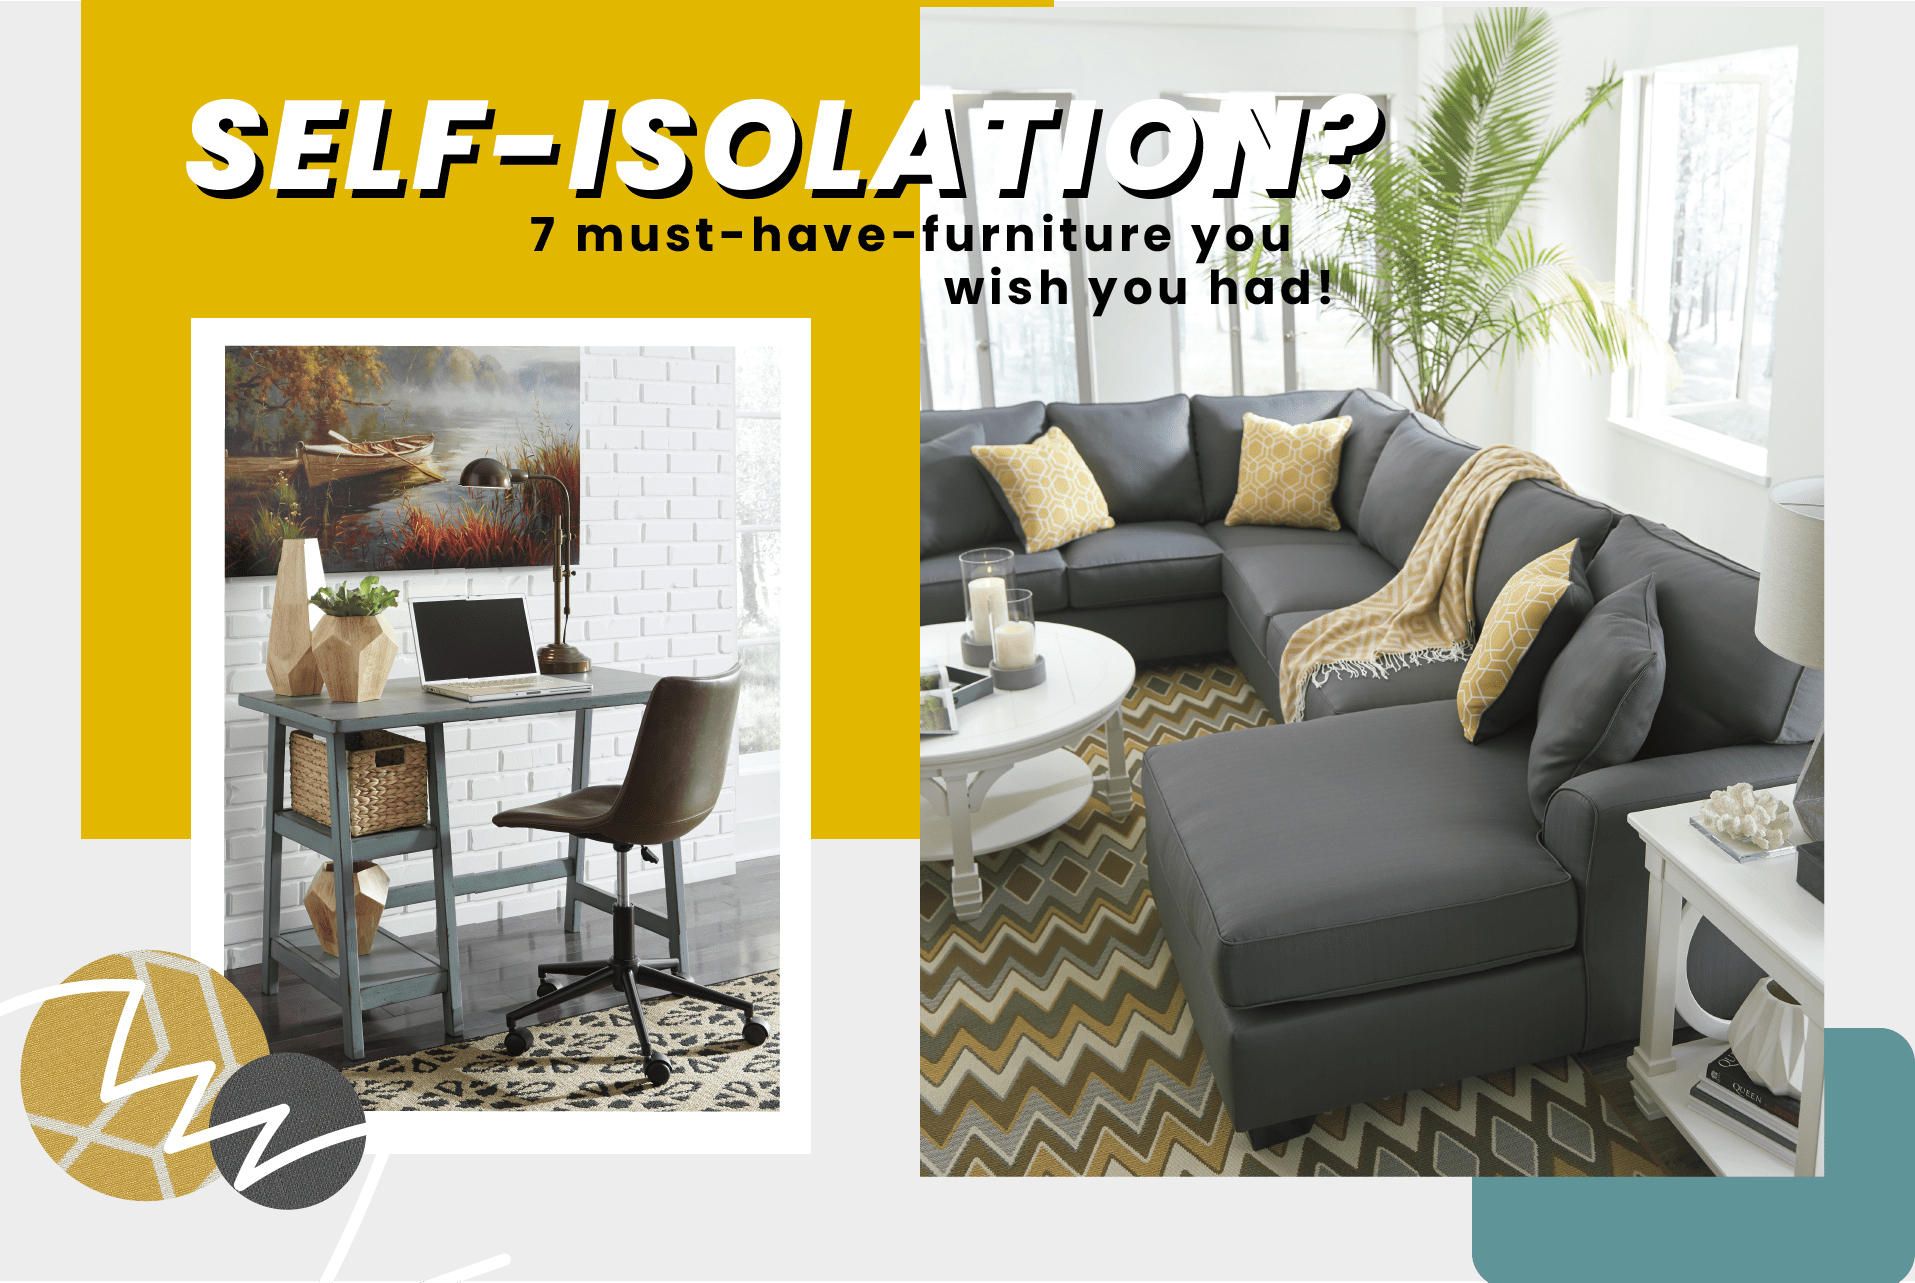 SELF-ISOLATION: 7 MUST HAVE FURNITURE YOU WISH YOU HAD